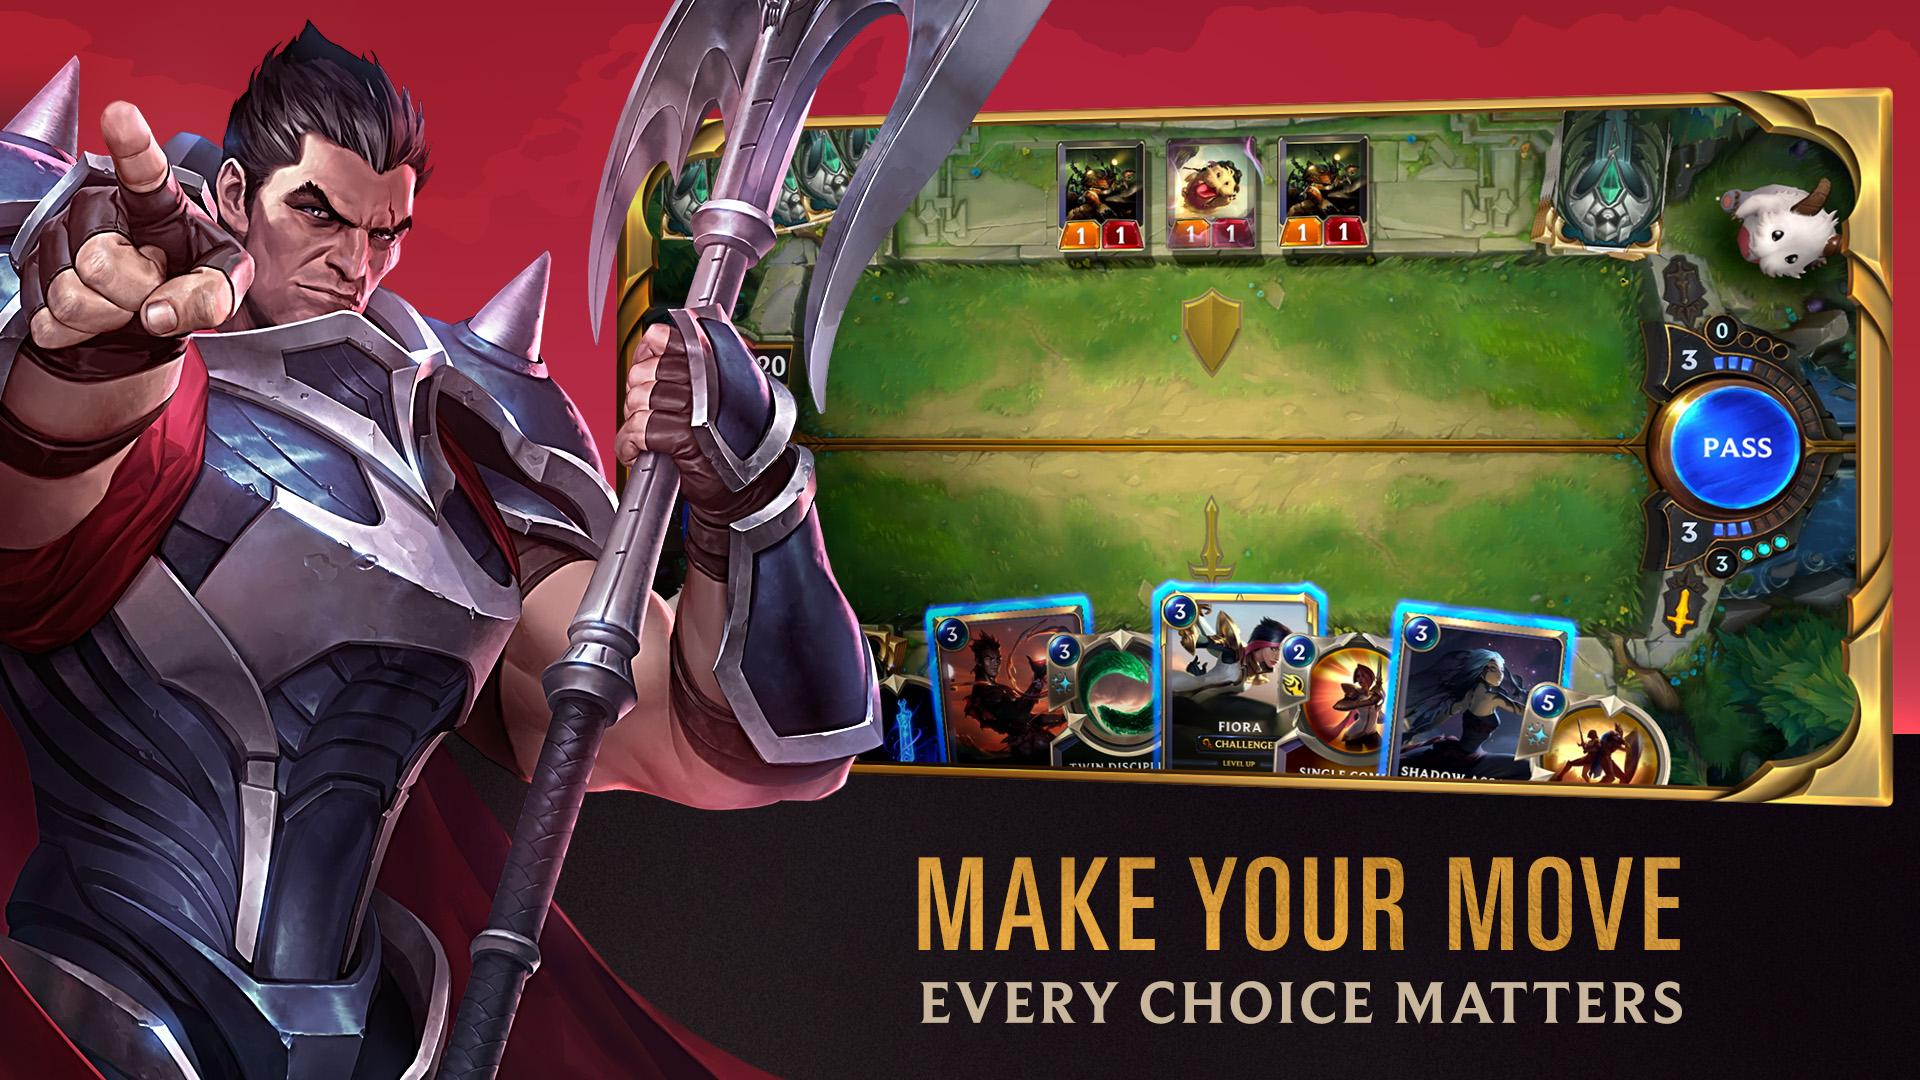 Legends of Runeterra on Android - Riot Game's Awesome Card Game is Coming to BlueStacks Soon!